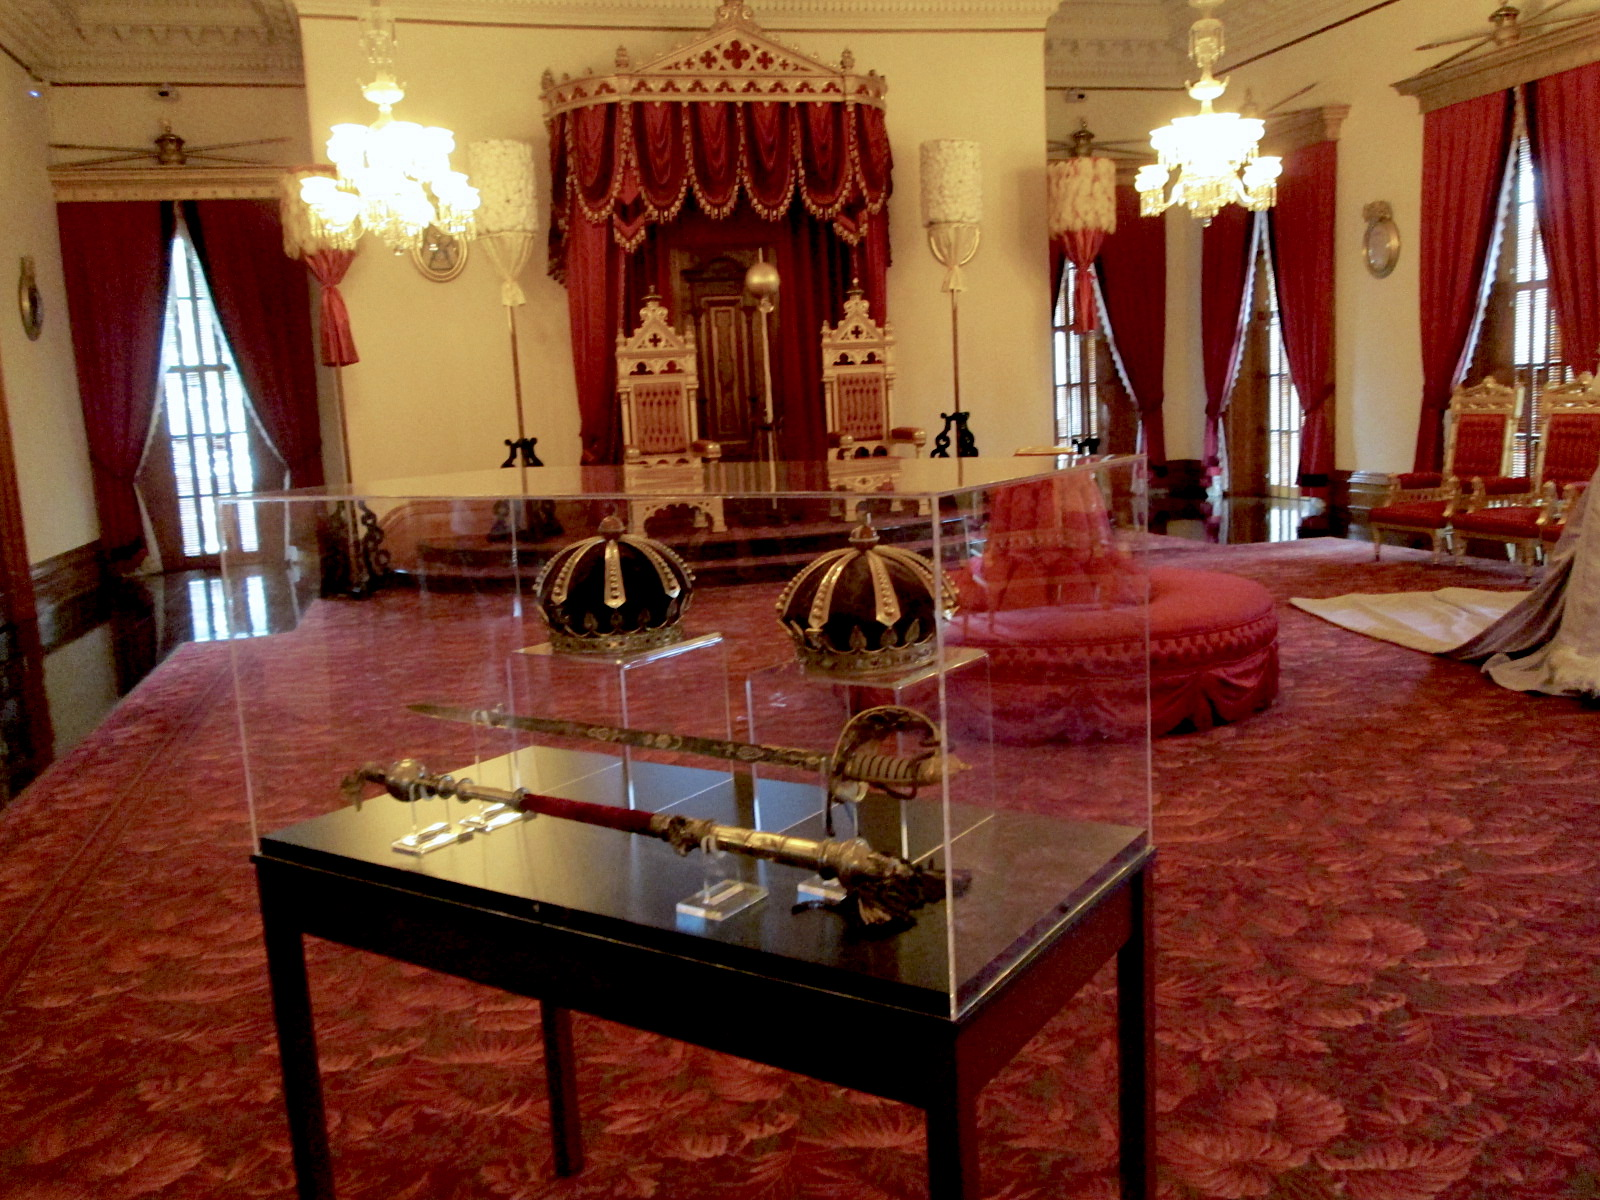 throne room with crowns.jpg